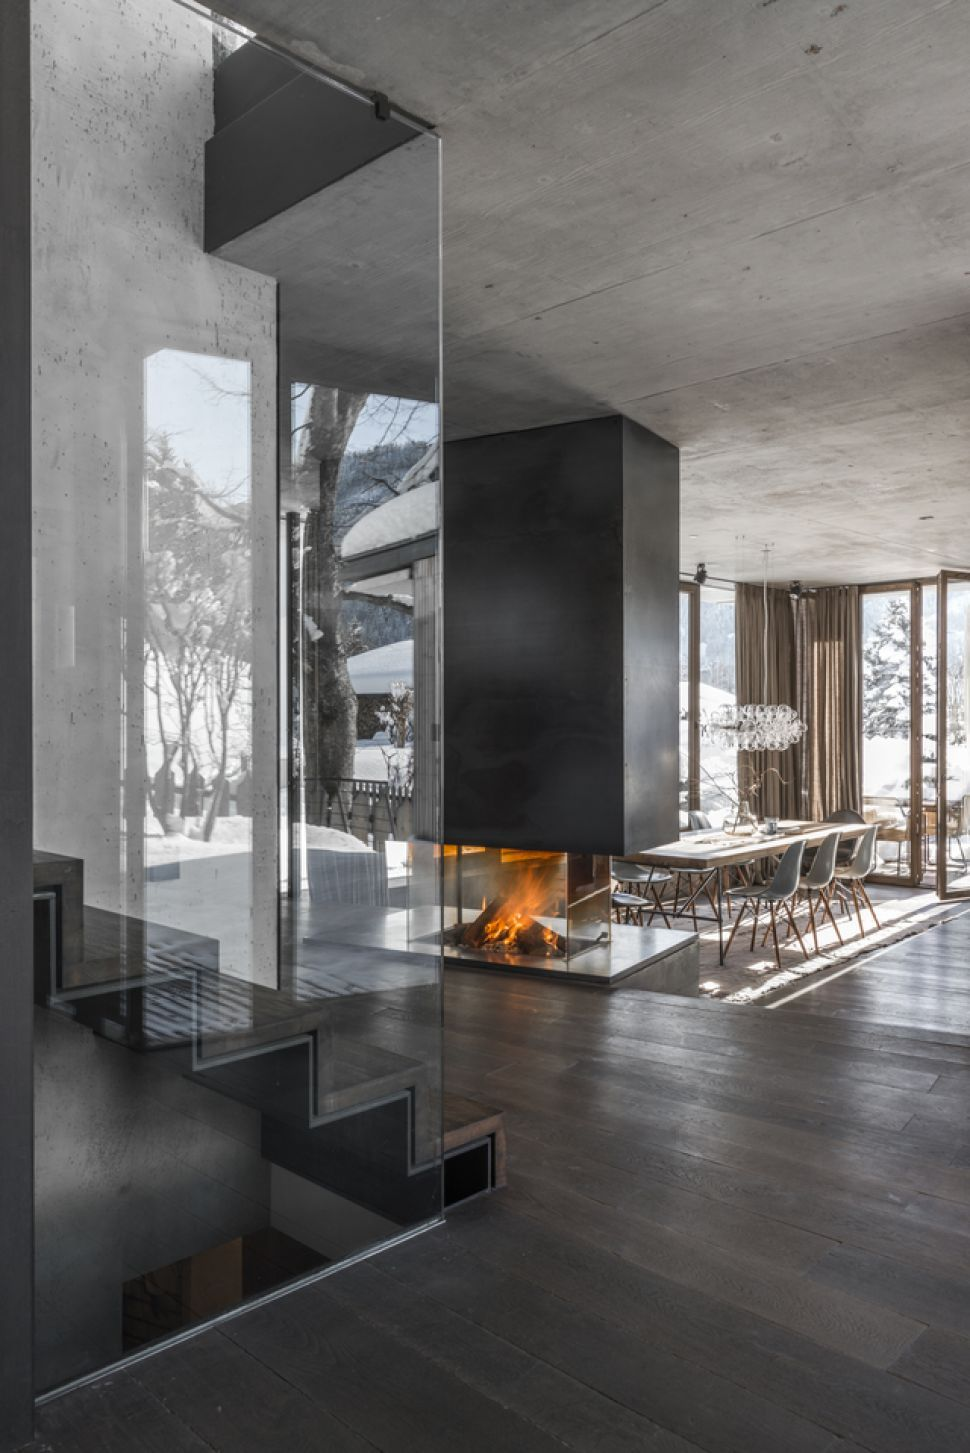 We Design Interiors Chandigarh: We Visit A Winter Wonderhome In Austria: A?traditional